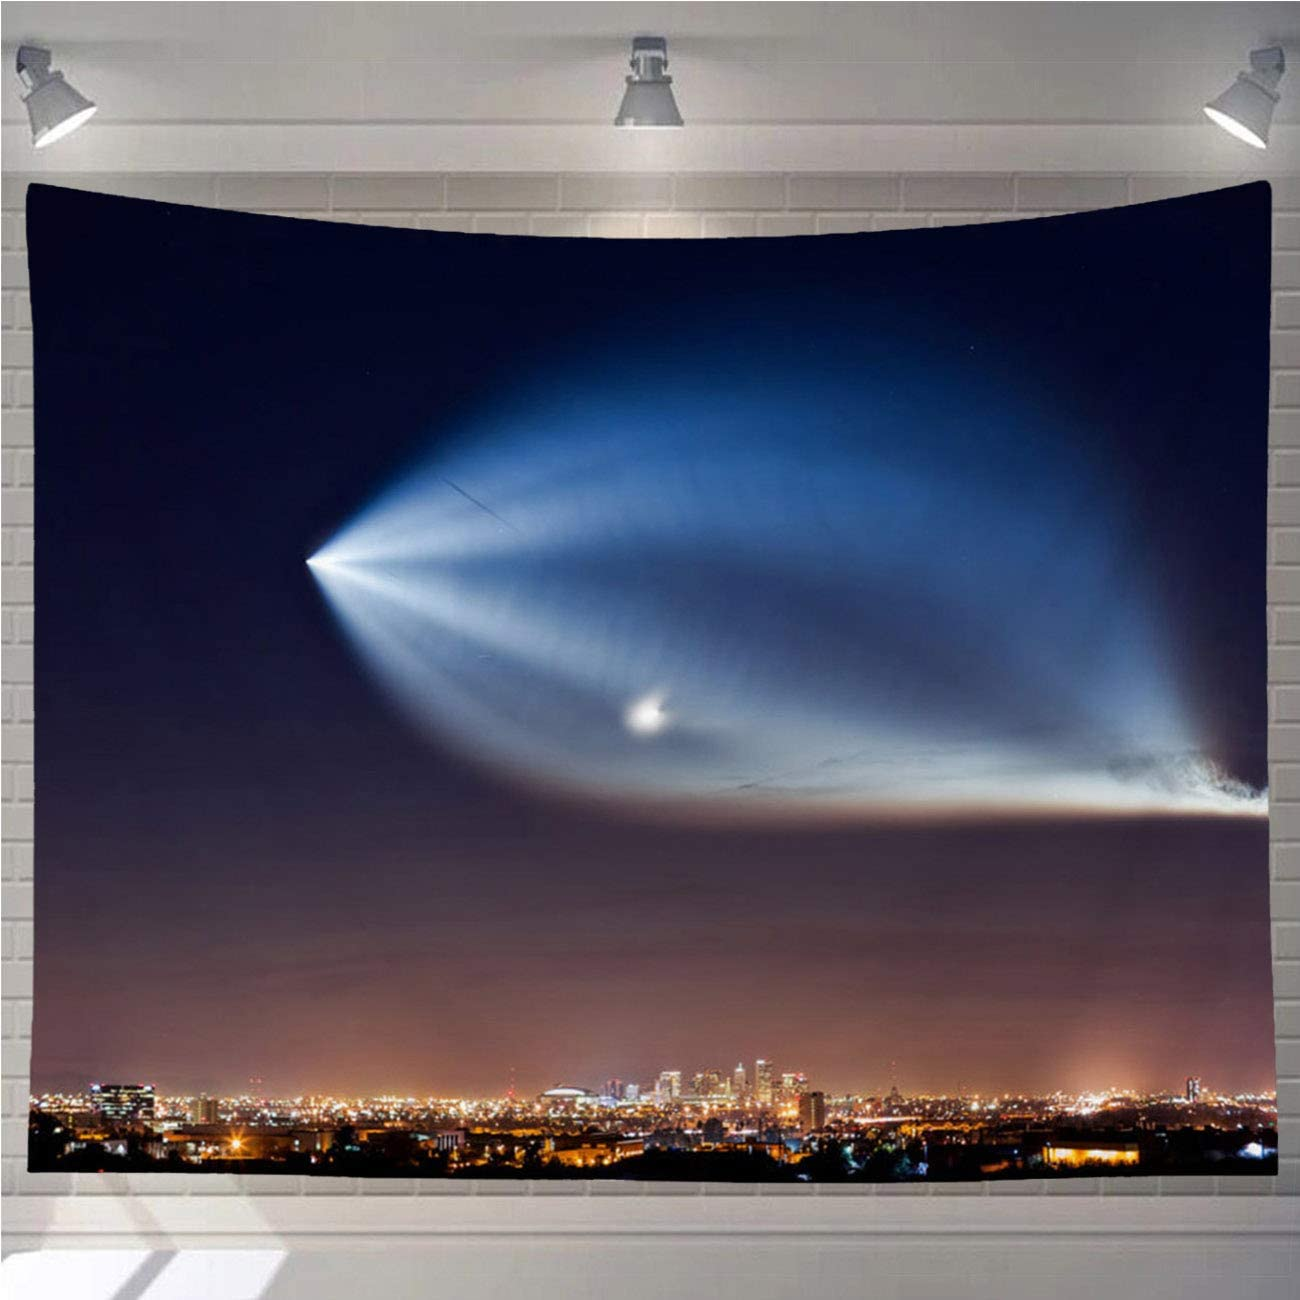 OTTOSUN Space Tapestry Wall Hanging,SpaceX Falcon 9 Rocket Launch Over The Downtown Phoenix Skyline,Wall Art for Living Room Bedroom Home Decor,90x70 in